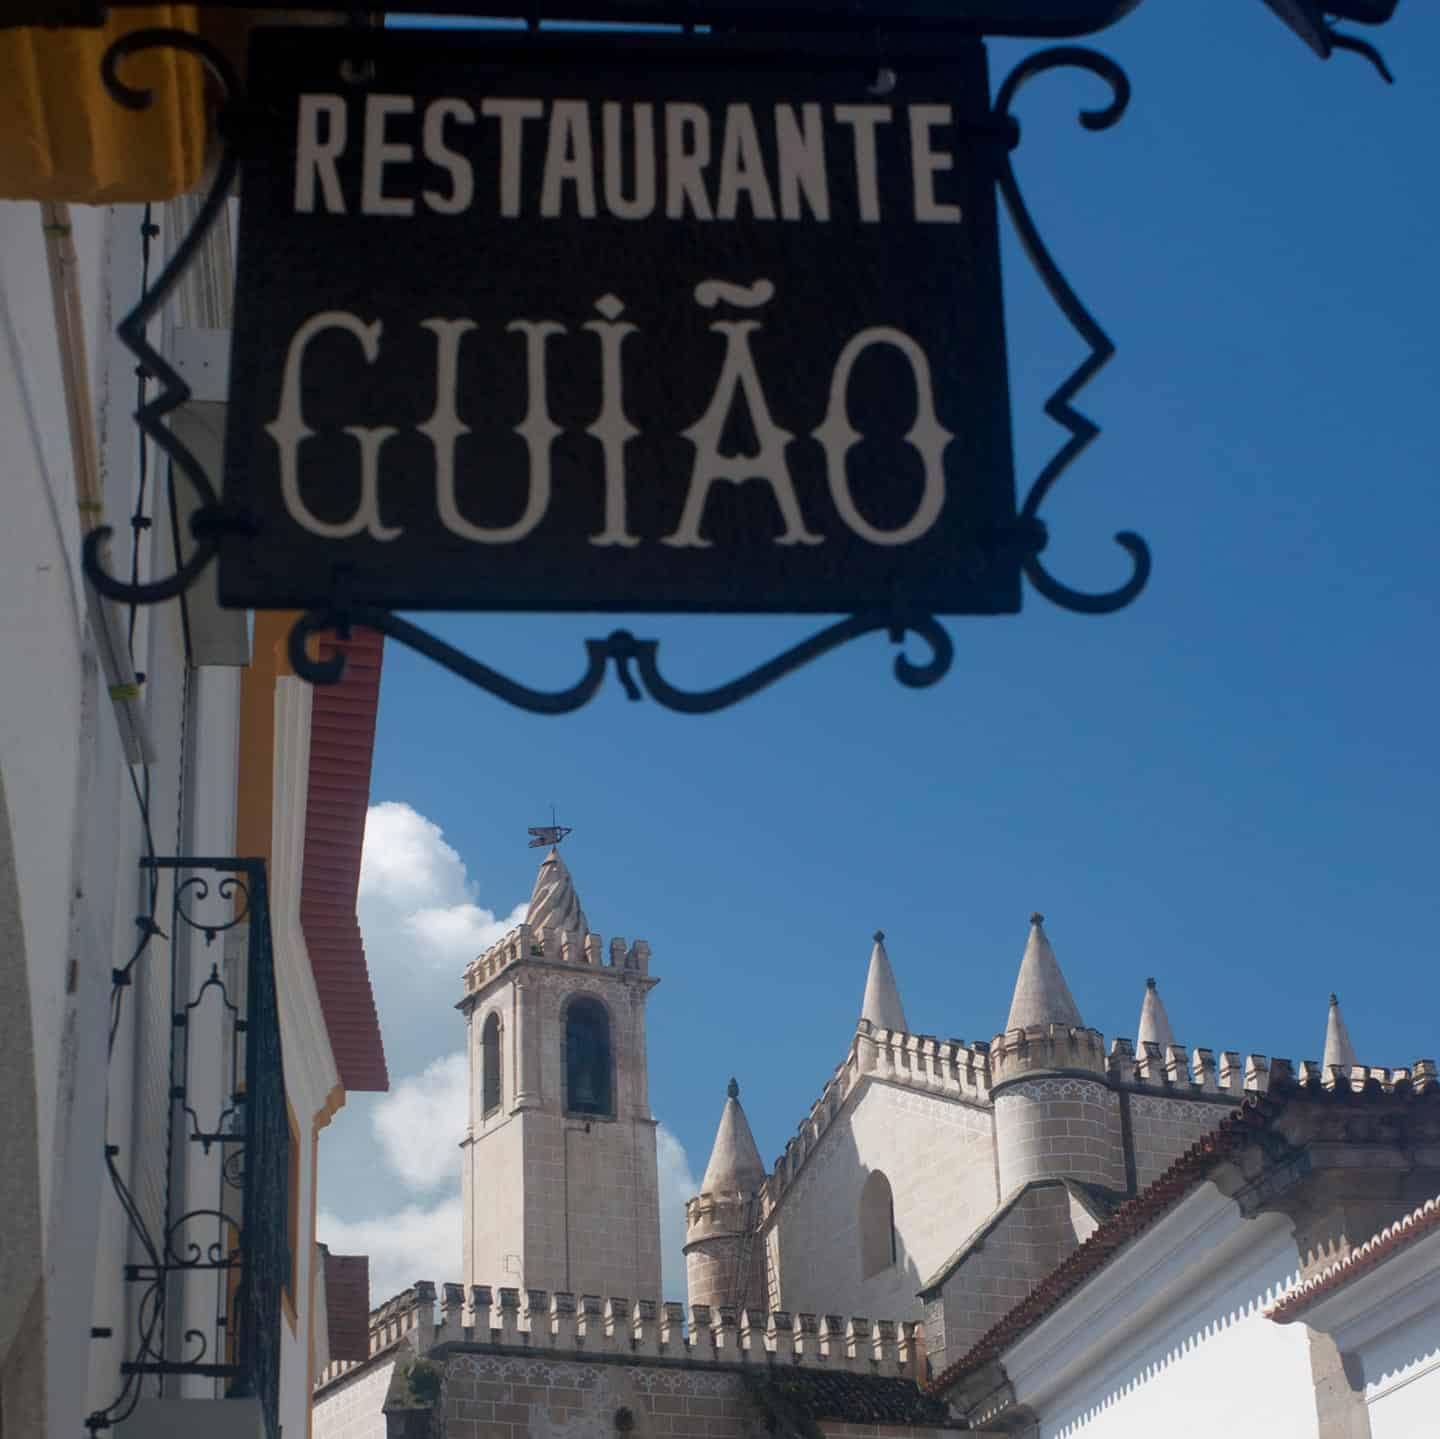 Image of a restaurant sign and church in Evora